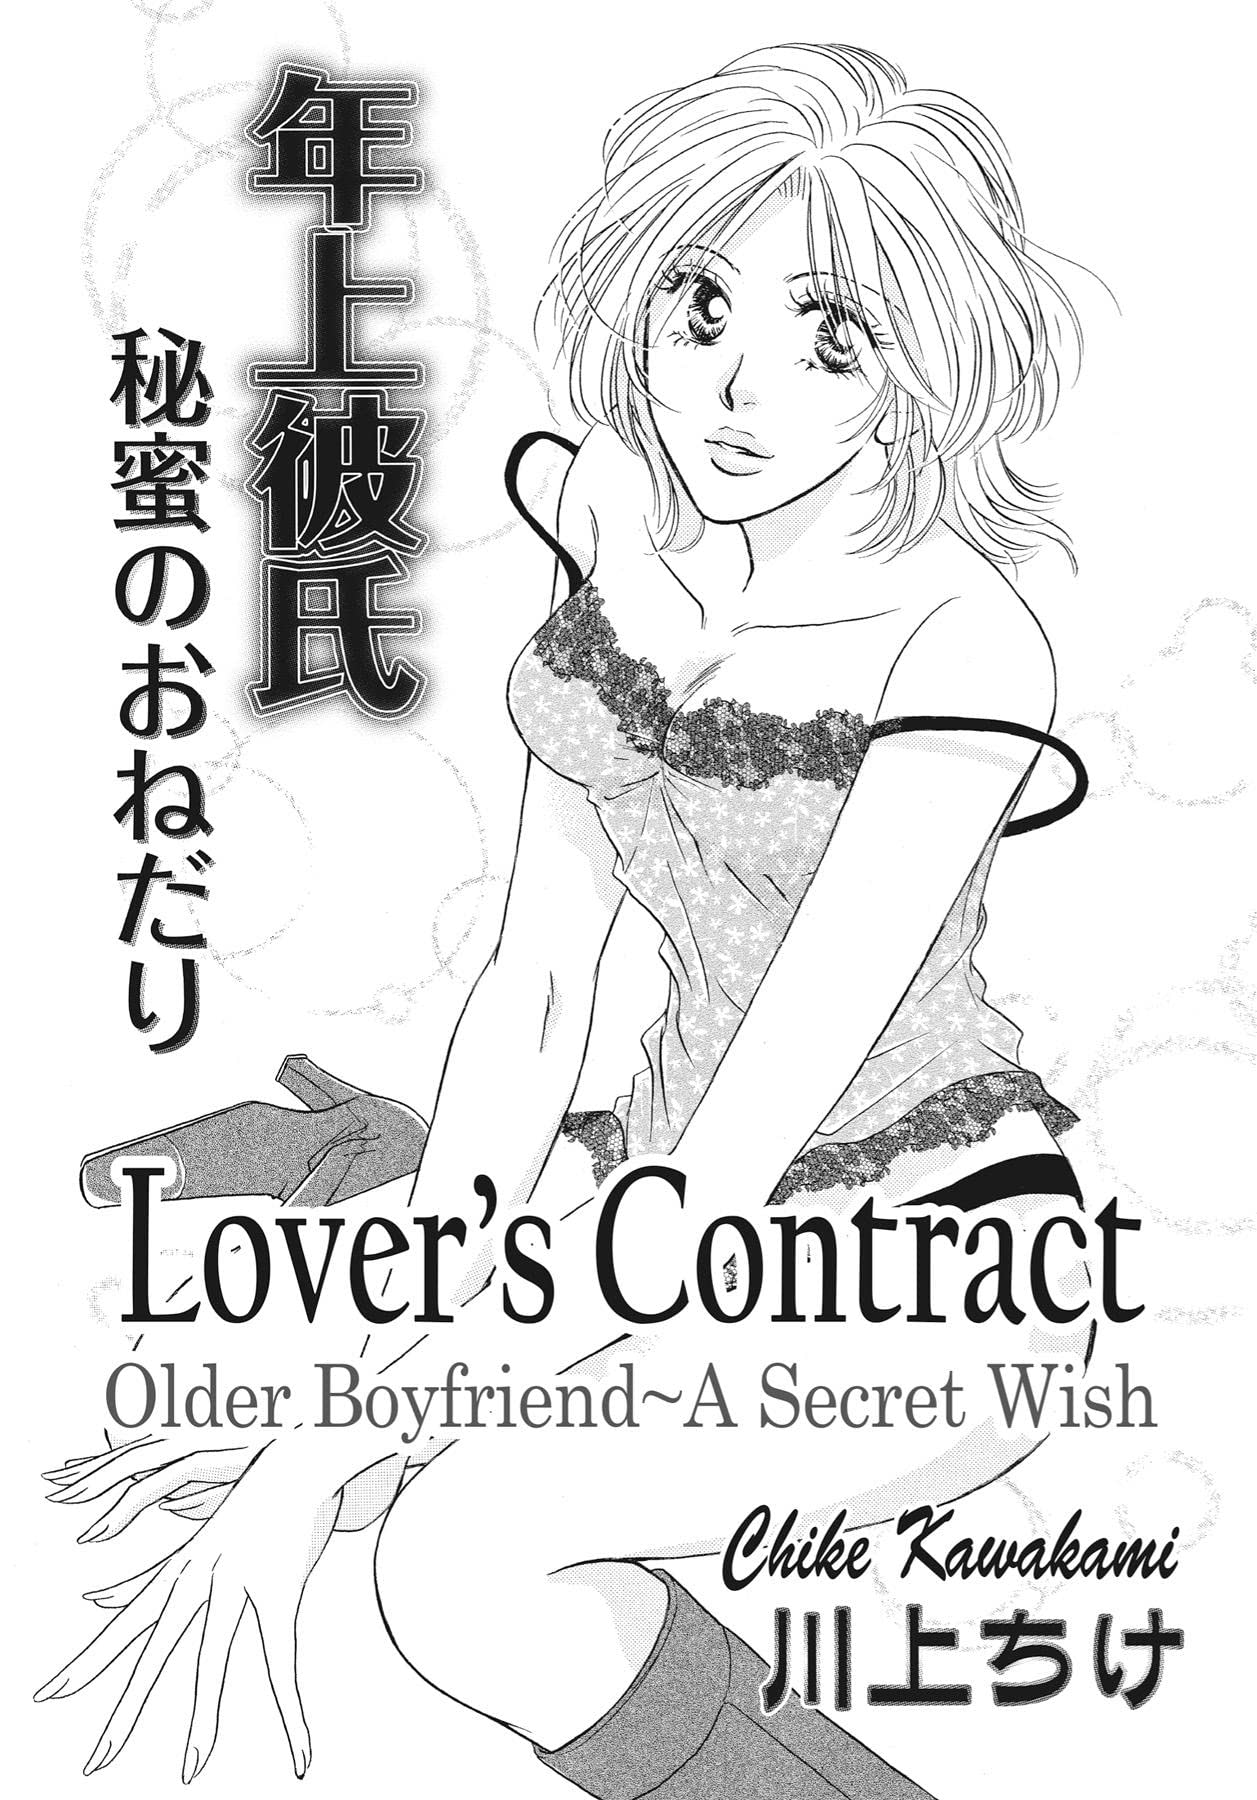 Lover's Contract #5